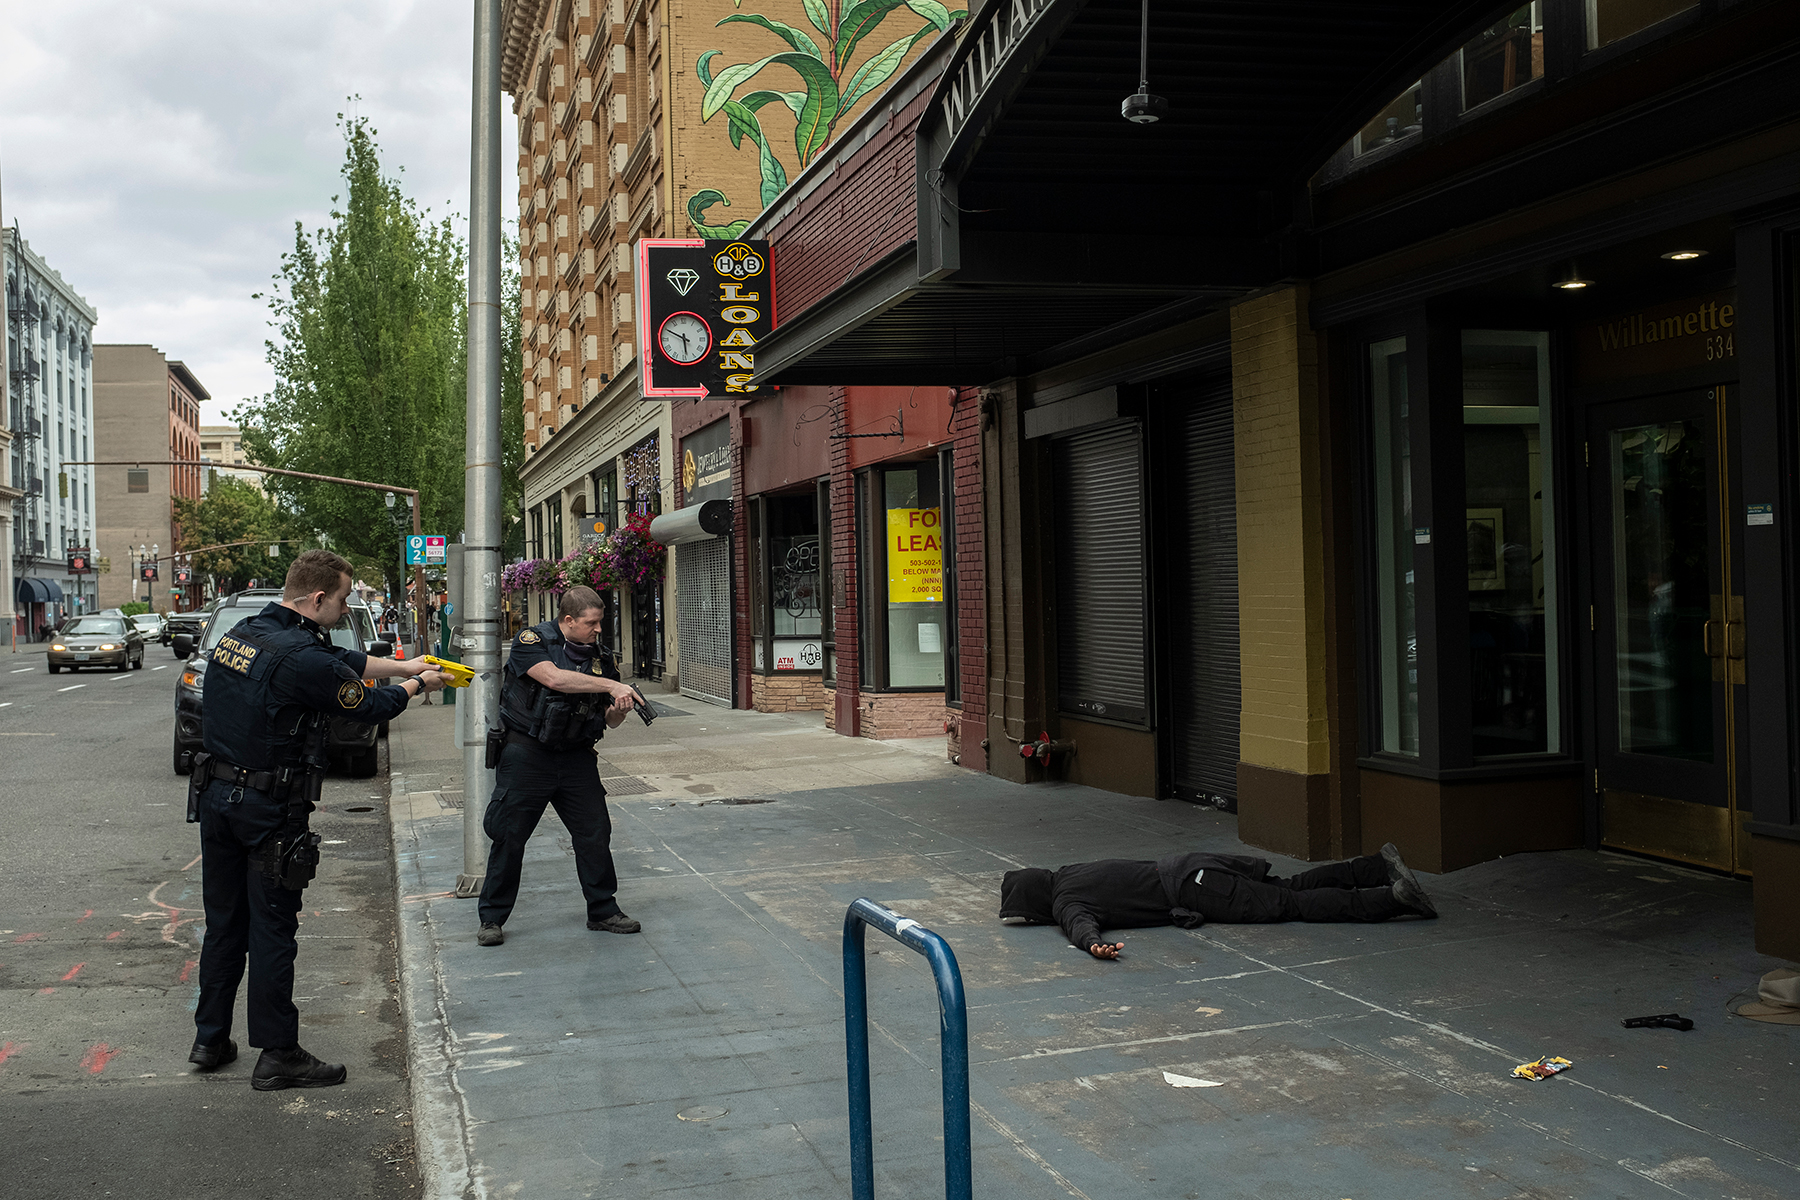 Police disarm and arrest Dennis G. Anderson after he engaged in a gunfight with antifascist activists in Portland, Ore., August 22, 2021. He was charged with unlawful use of a weapon and unlawful possession of a firearm.